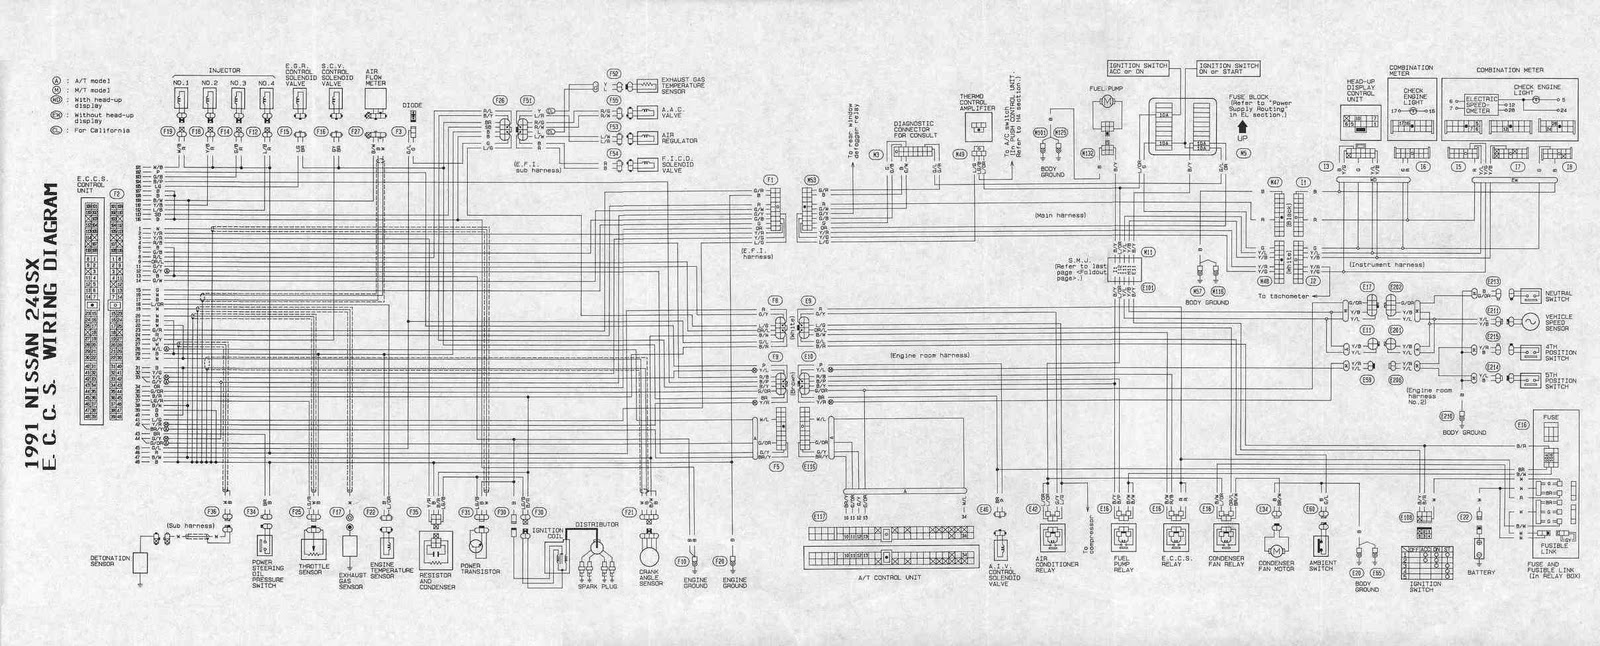 1991 Nissan Maxima Wiring Diagram Opinions About Sentra 2004 Fuse Box Dash Odicis 91 Pickup